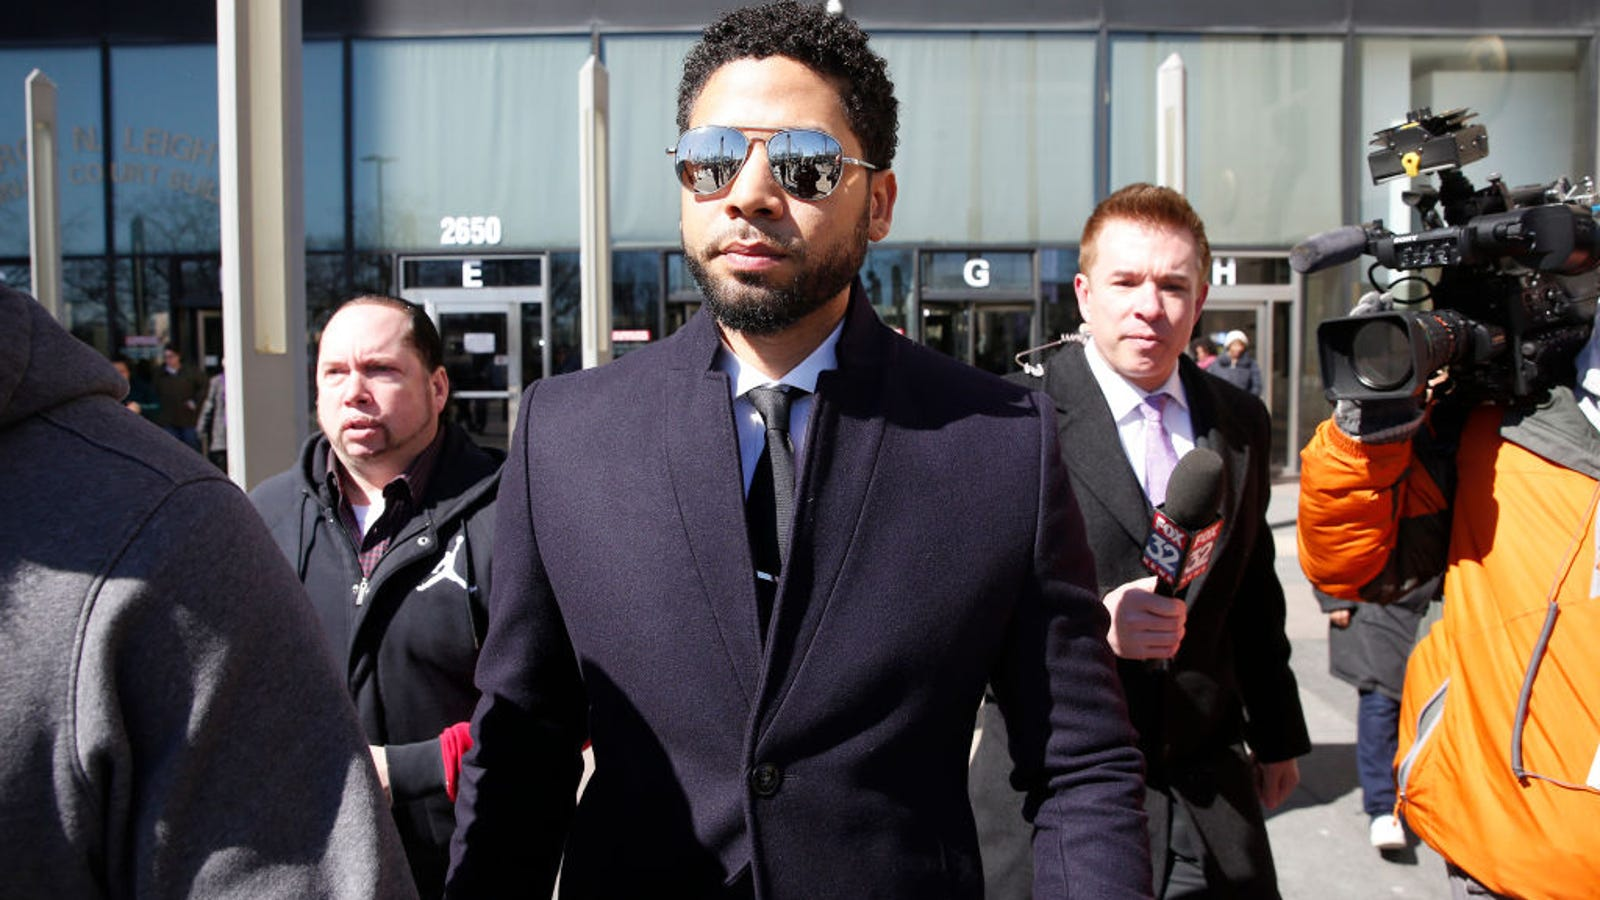 Jussie Smollett Wants No Part of New Chicago Court Hearing About a Special Prosecutor - The Root